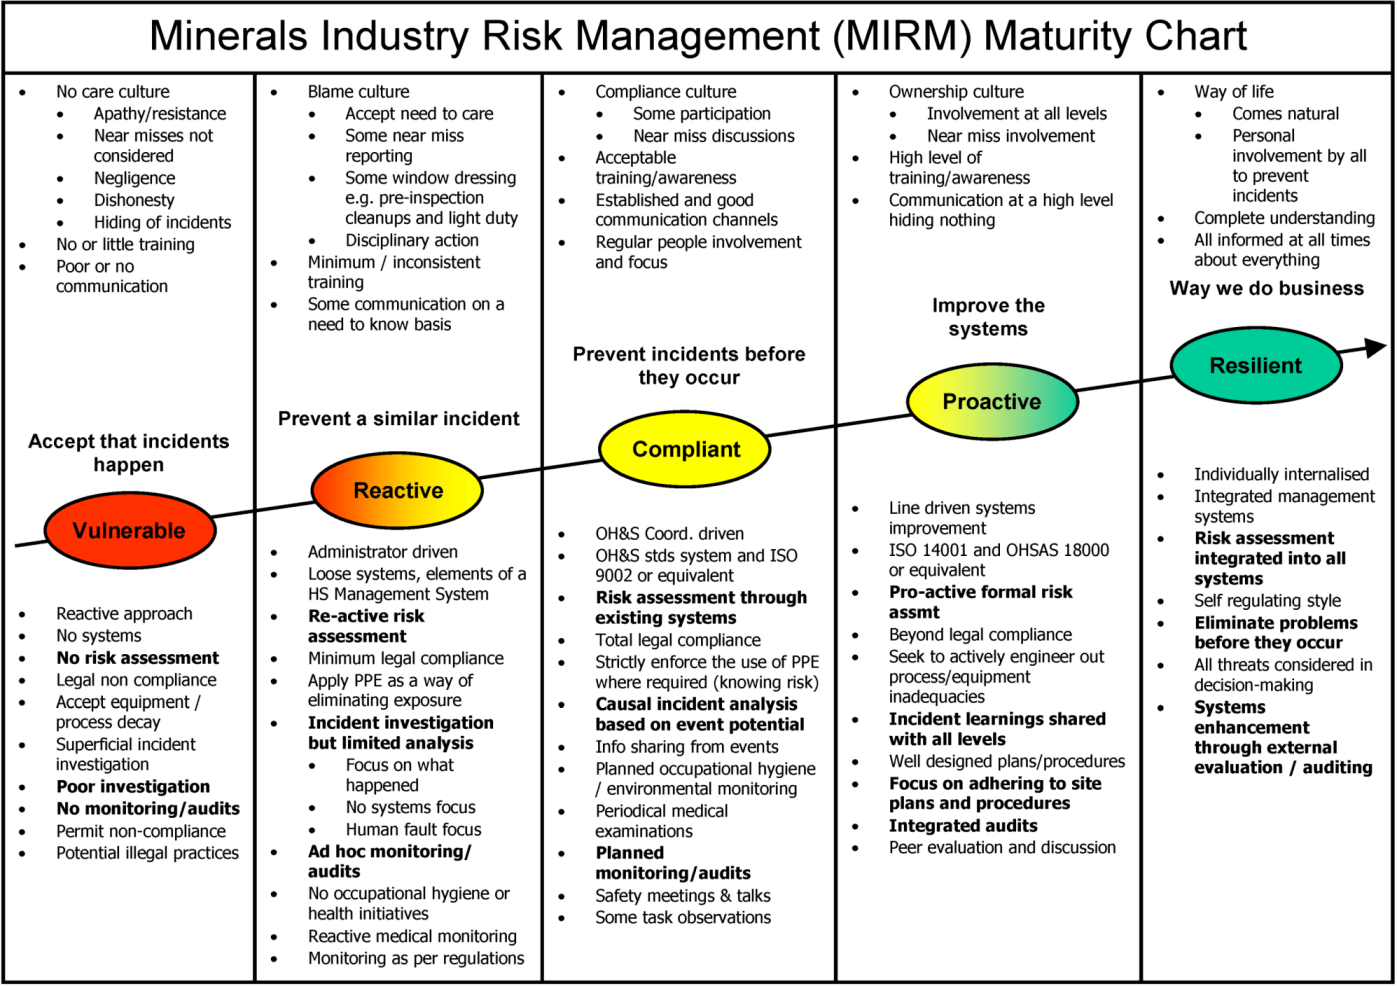 strategic planning framework diagram sap business one architecture minerals   free full-text the safety journey: using a maturity model for ...